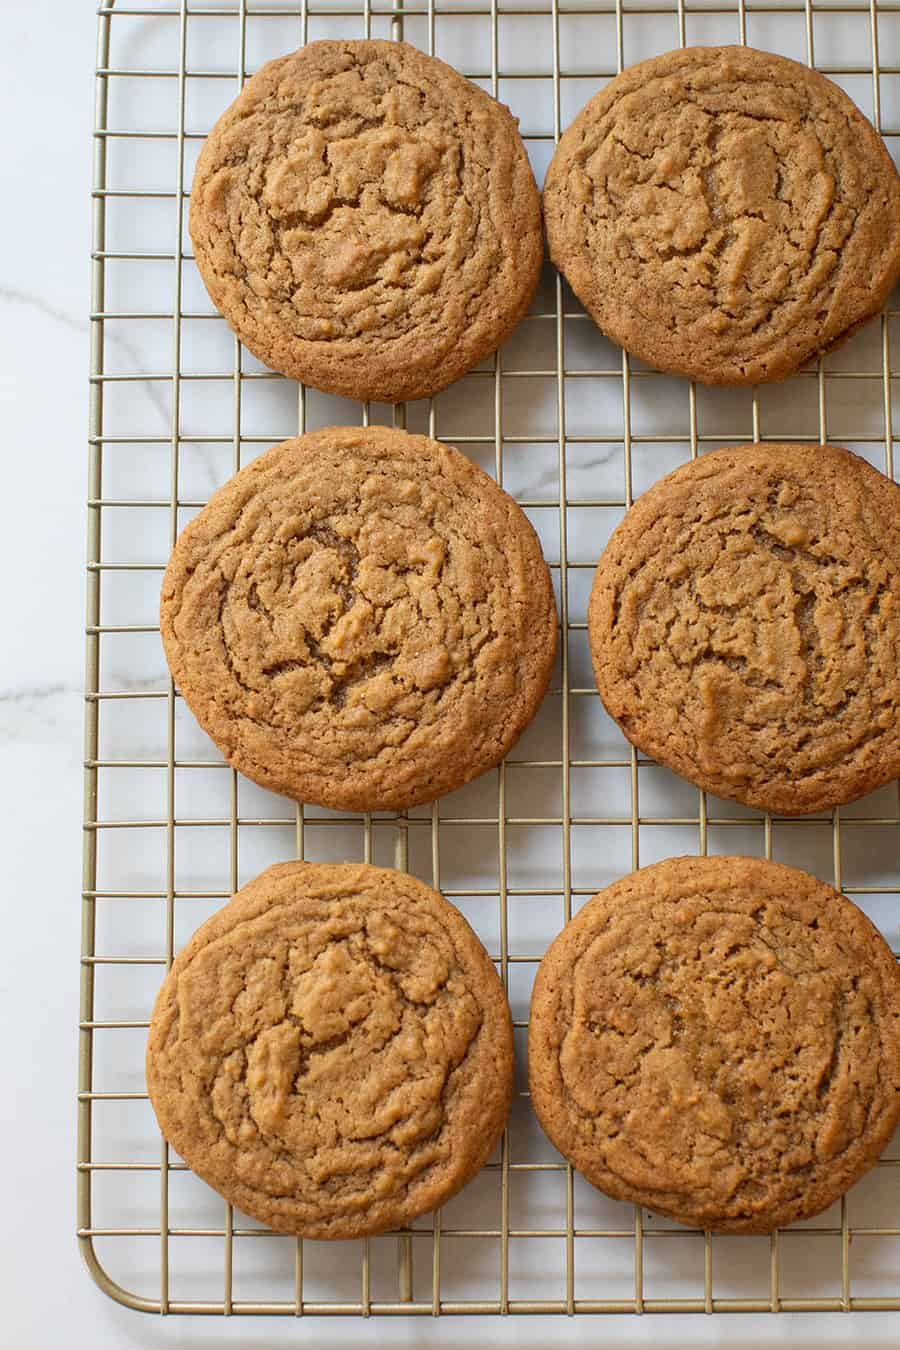 Ginger cookies on a cookie sheet.